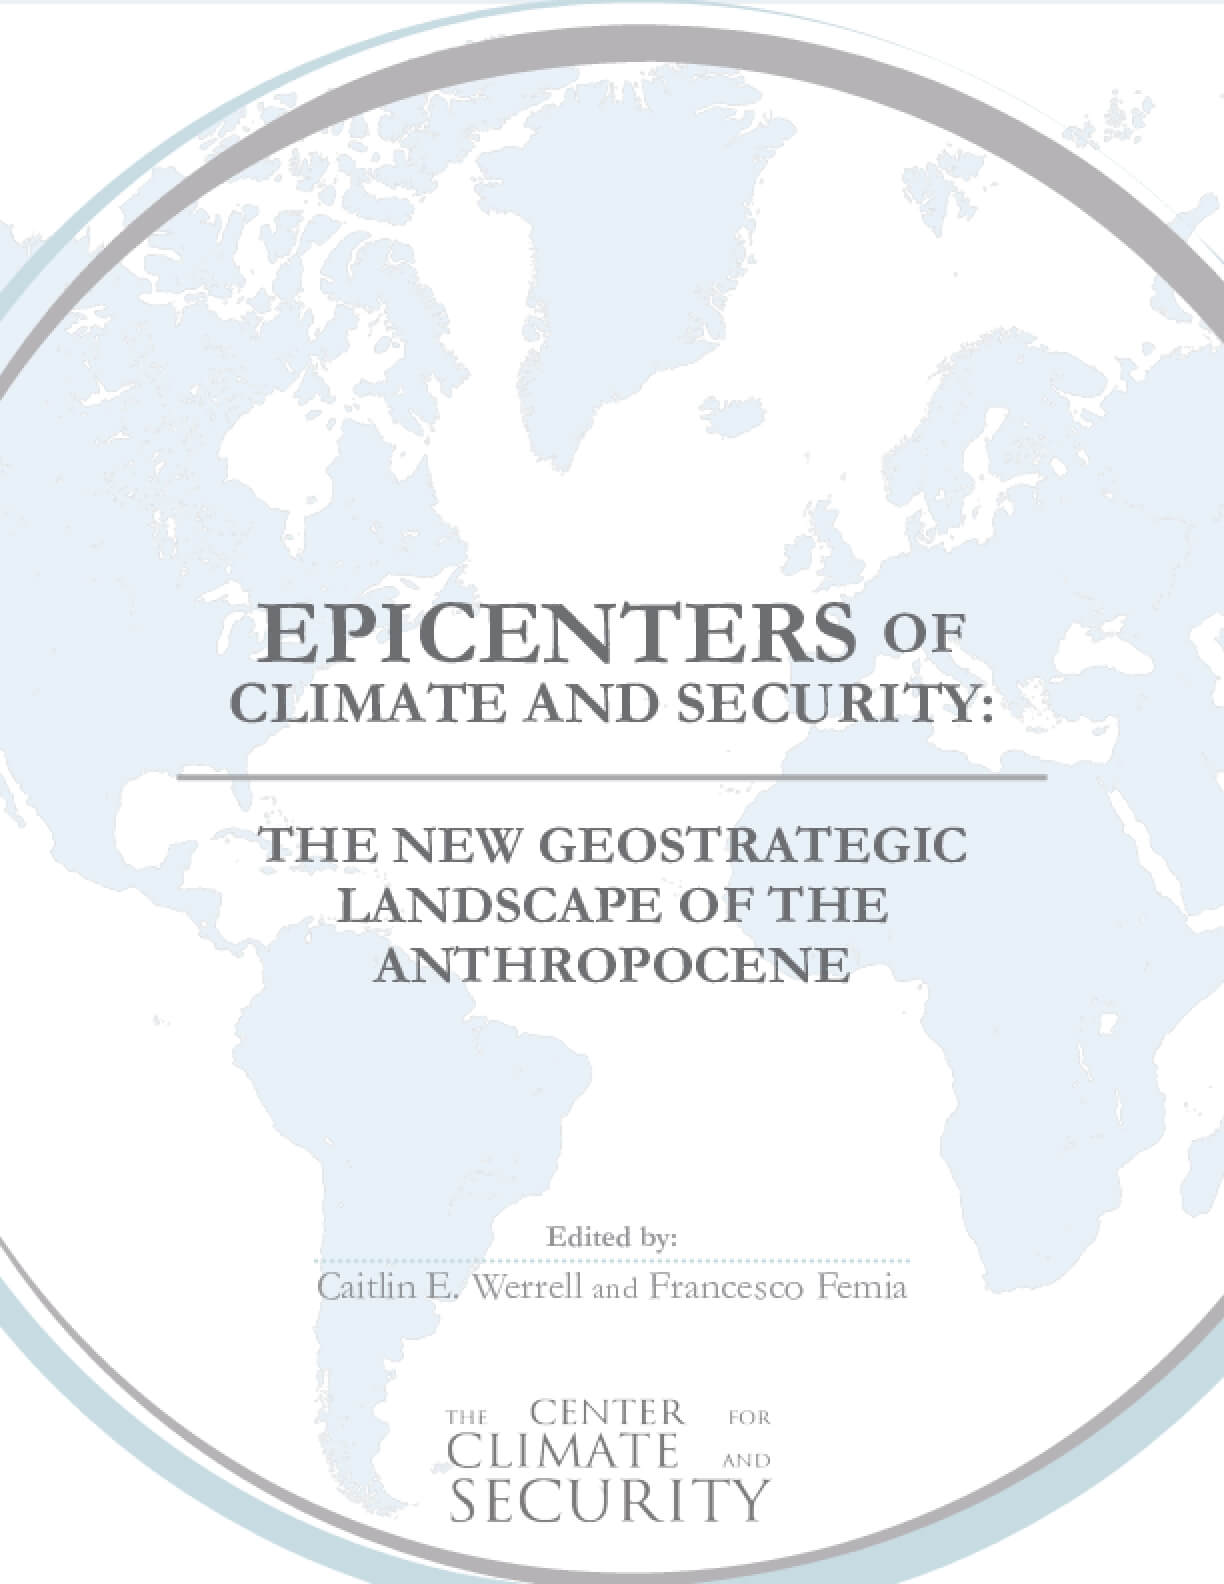 Epicenters of Climate and Security: The New Geostrategic Landscape of the Anthropocene